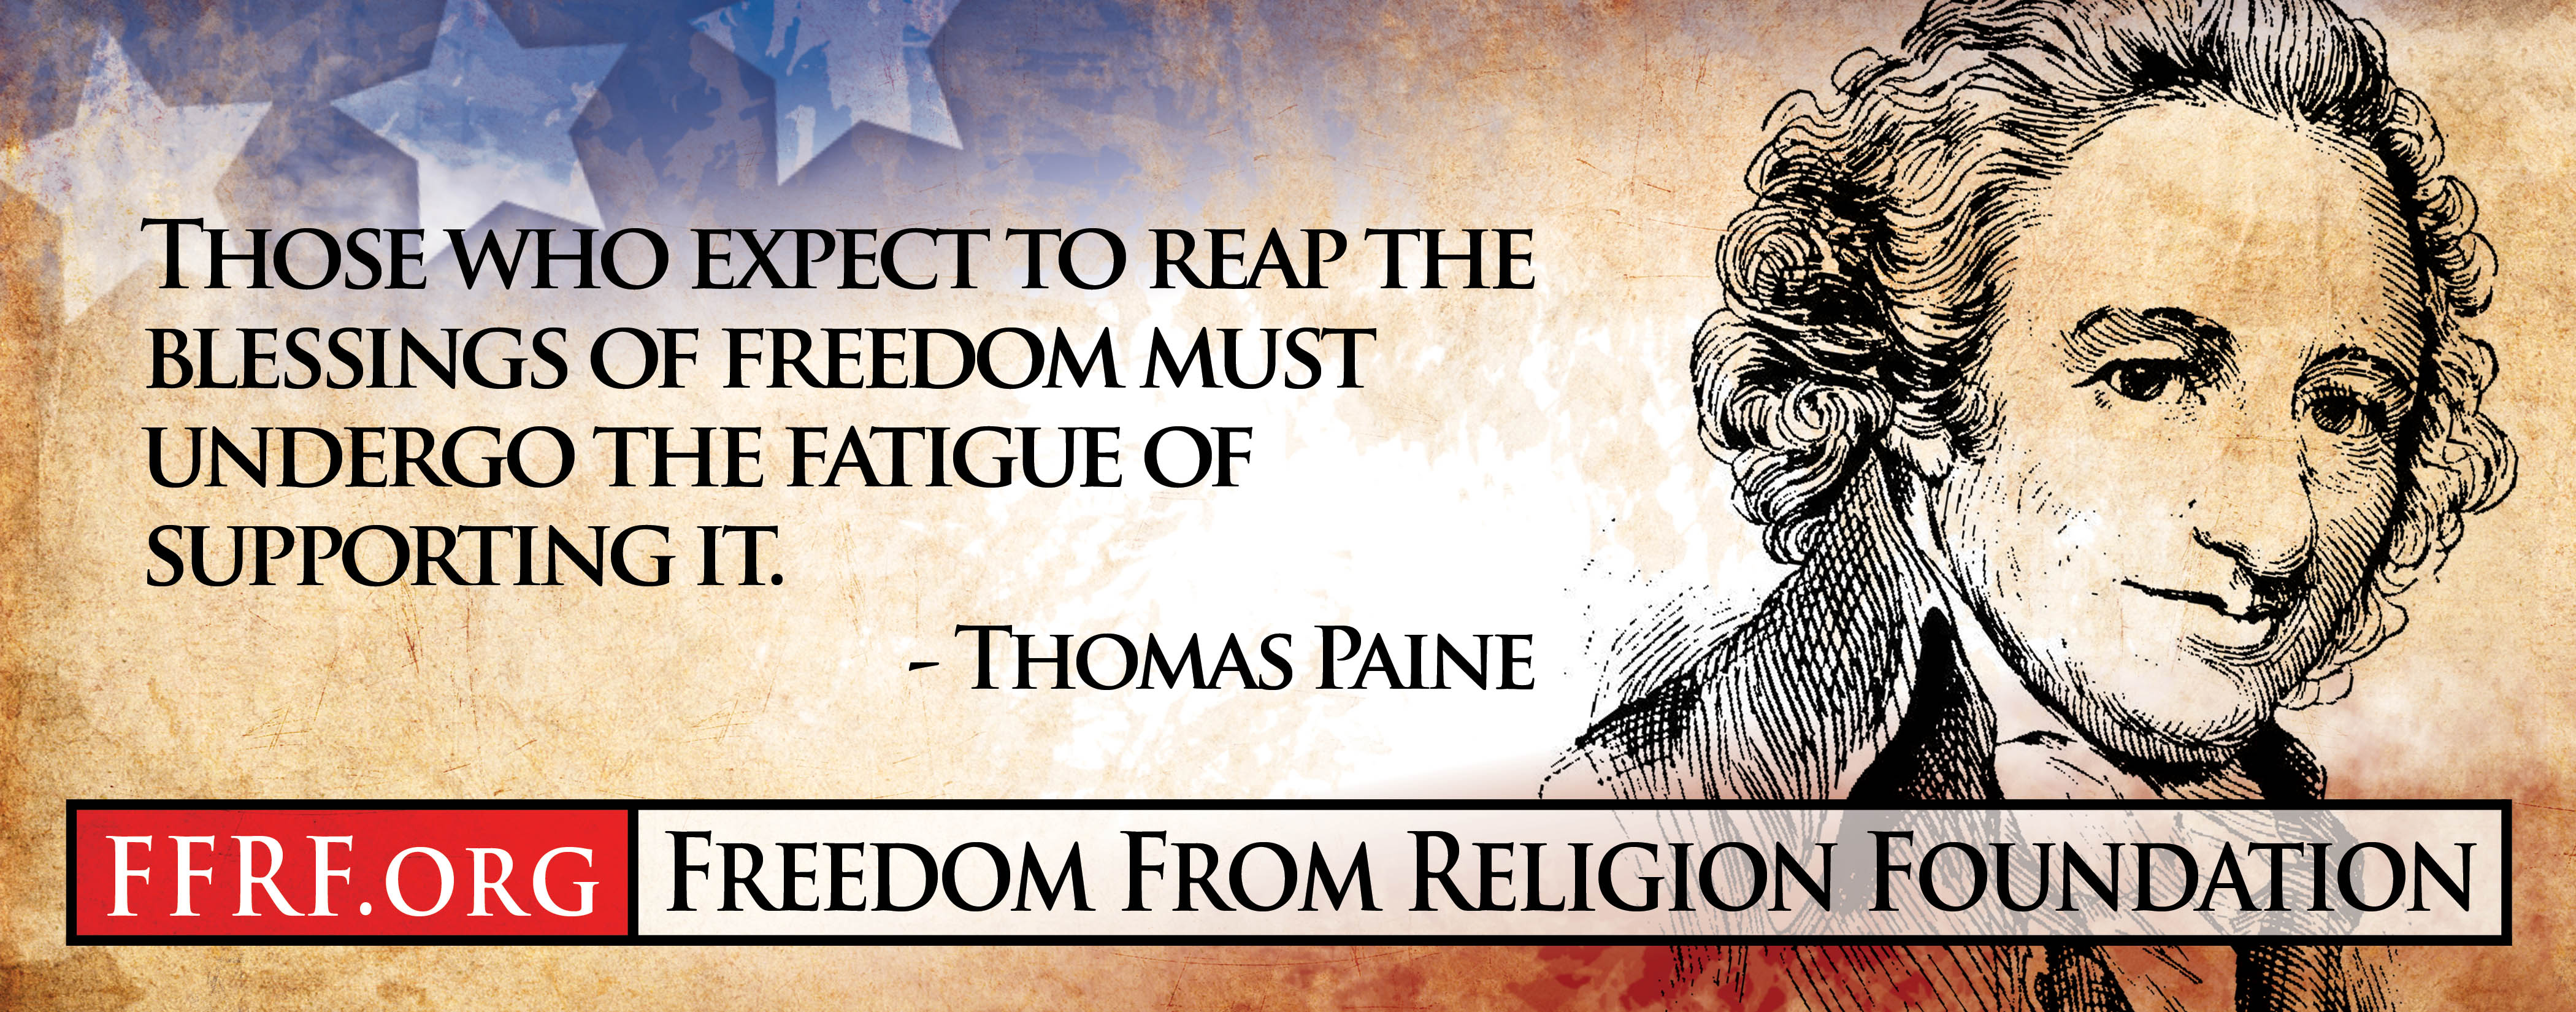 Founding Father Quotes Billboards  High Resolution Images  Freedom From Religion Foundation